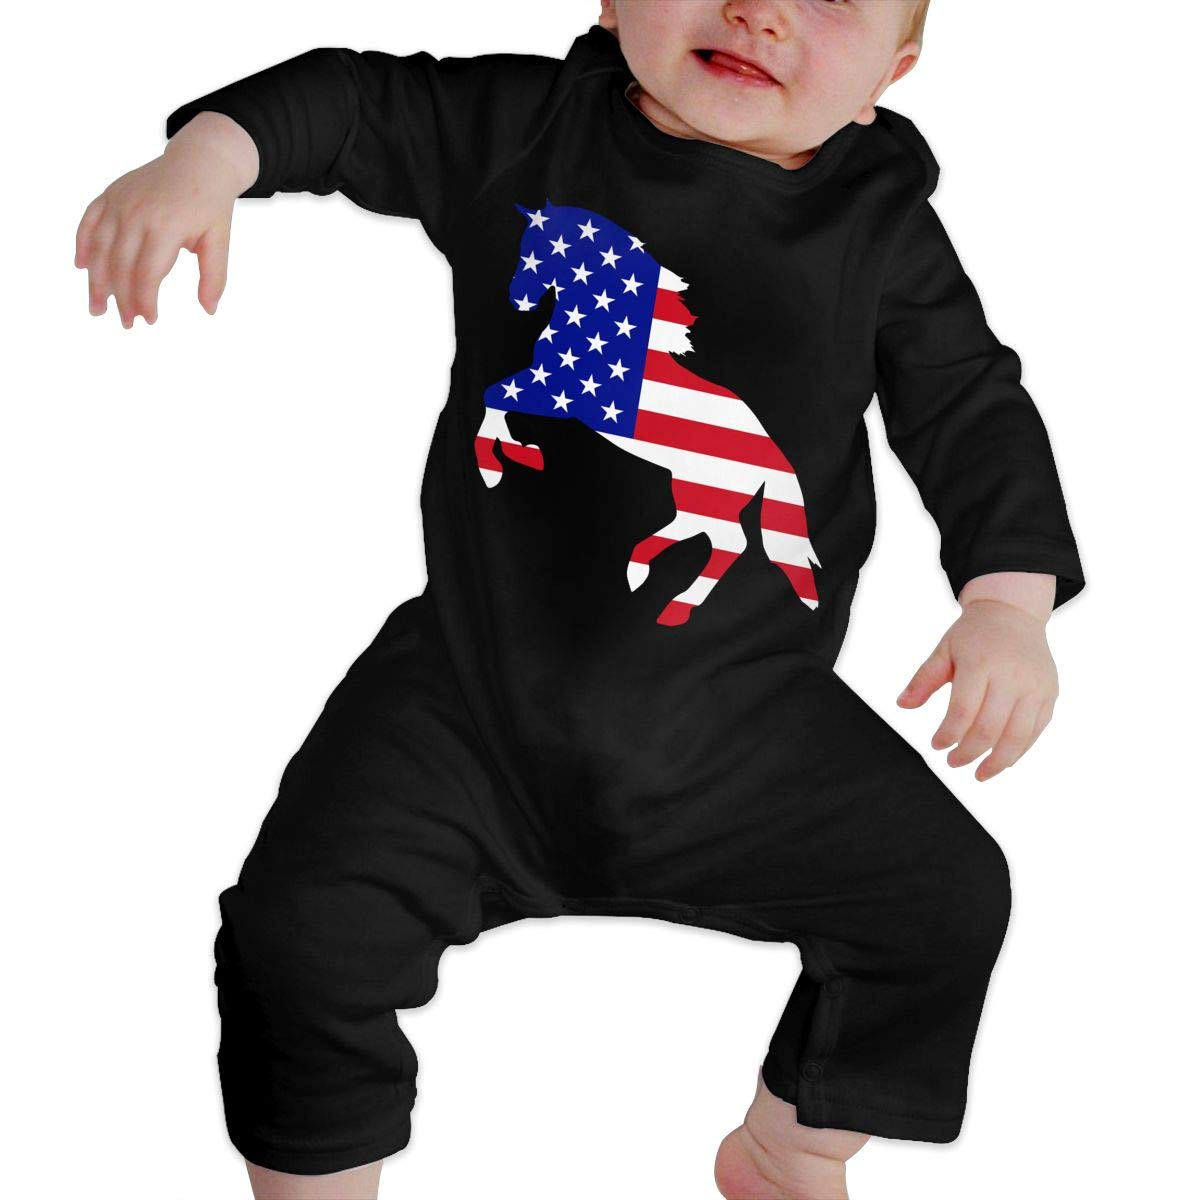 Fashion Horse Lover Gift Patriotic American Flag Playsuit U99oi-9 Long Sleeve Cotton Rompers for Unisex Baby